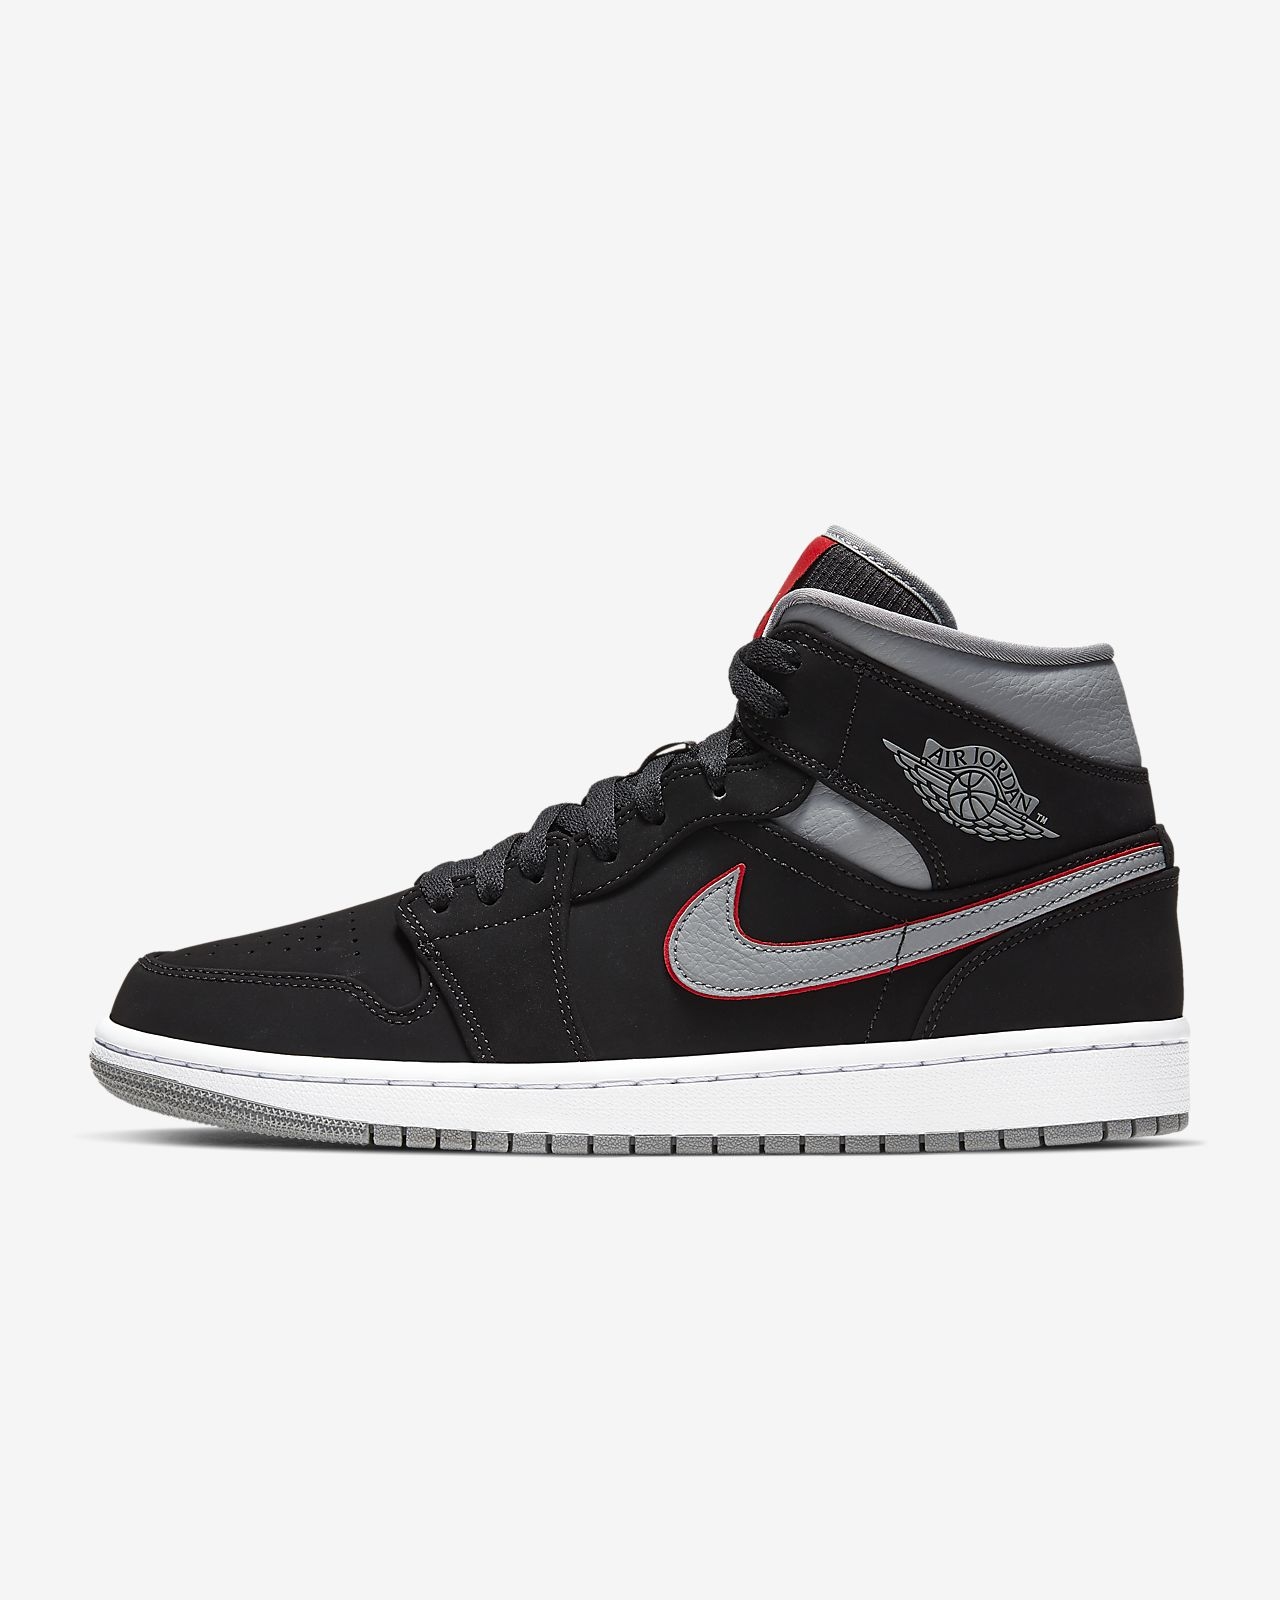 cheaper d4ac9 b6556 Air Jordan 1 Mid